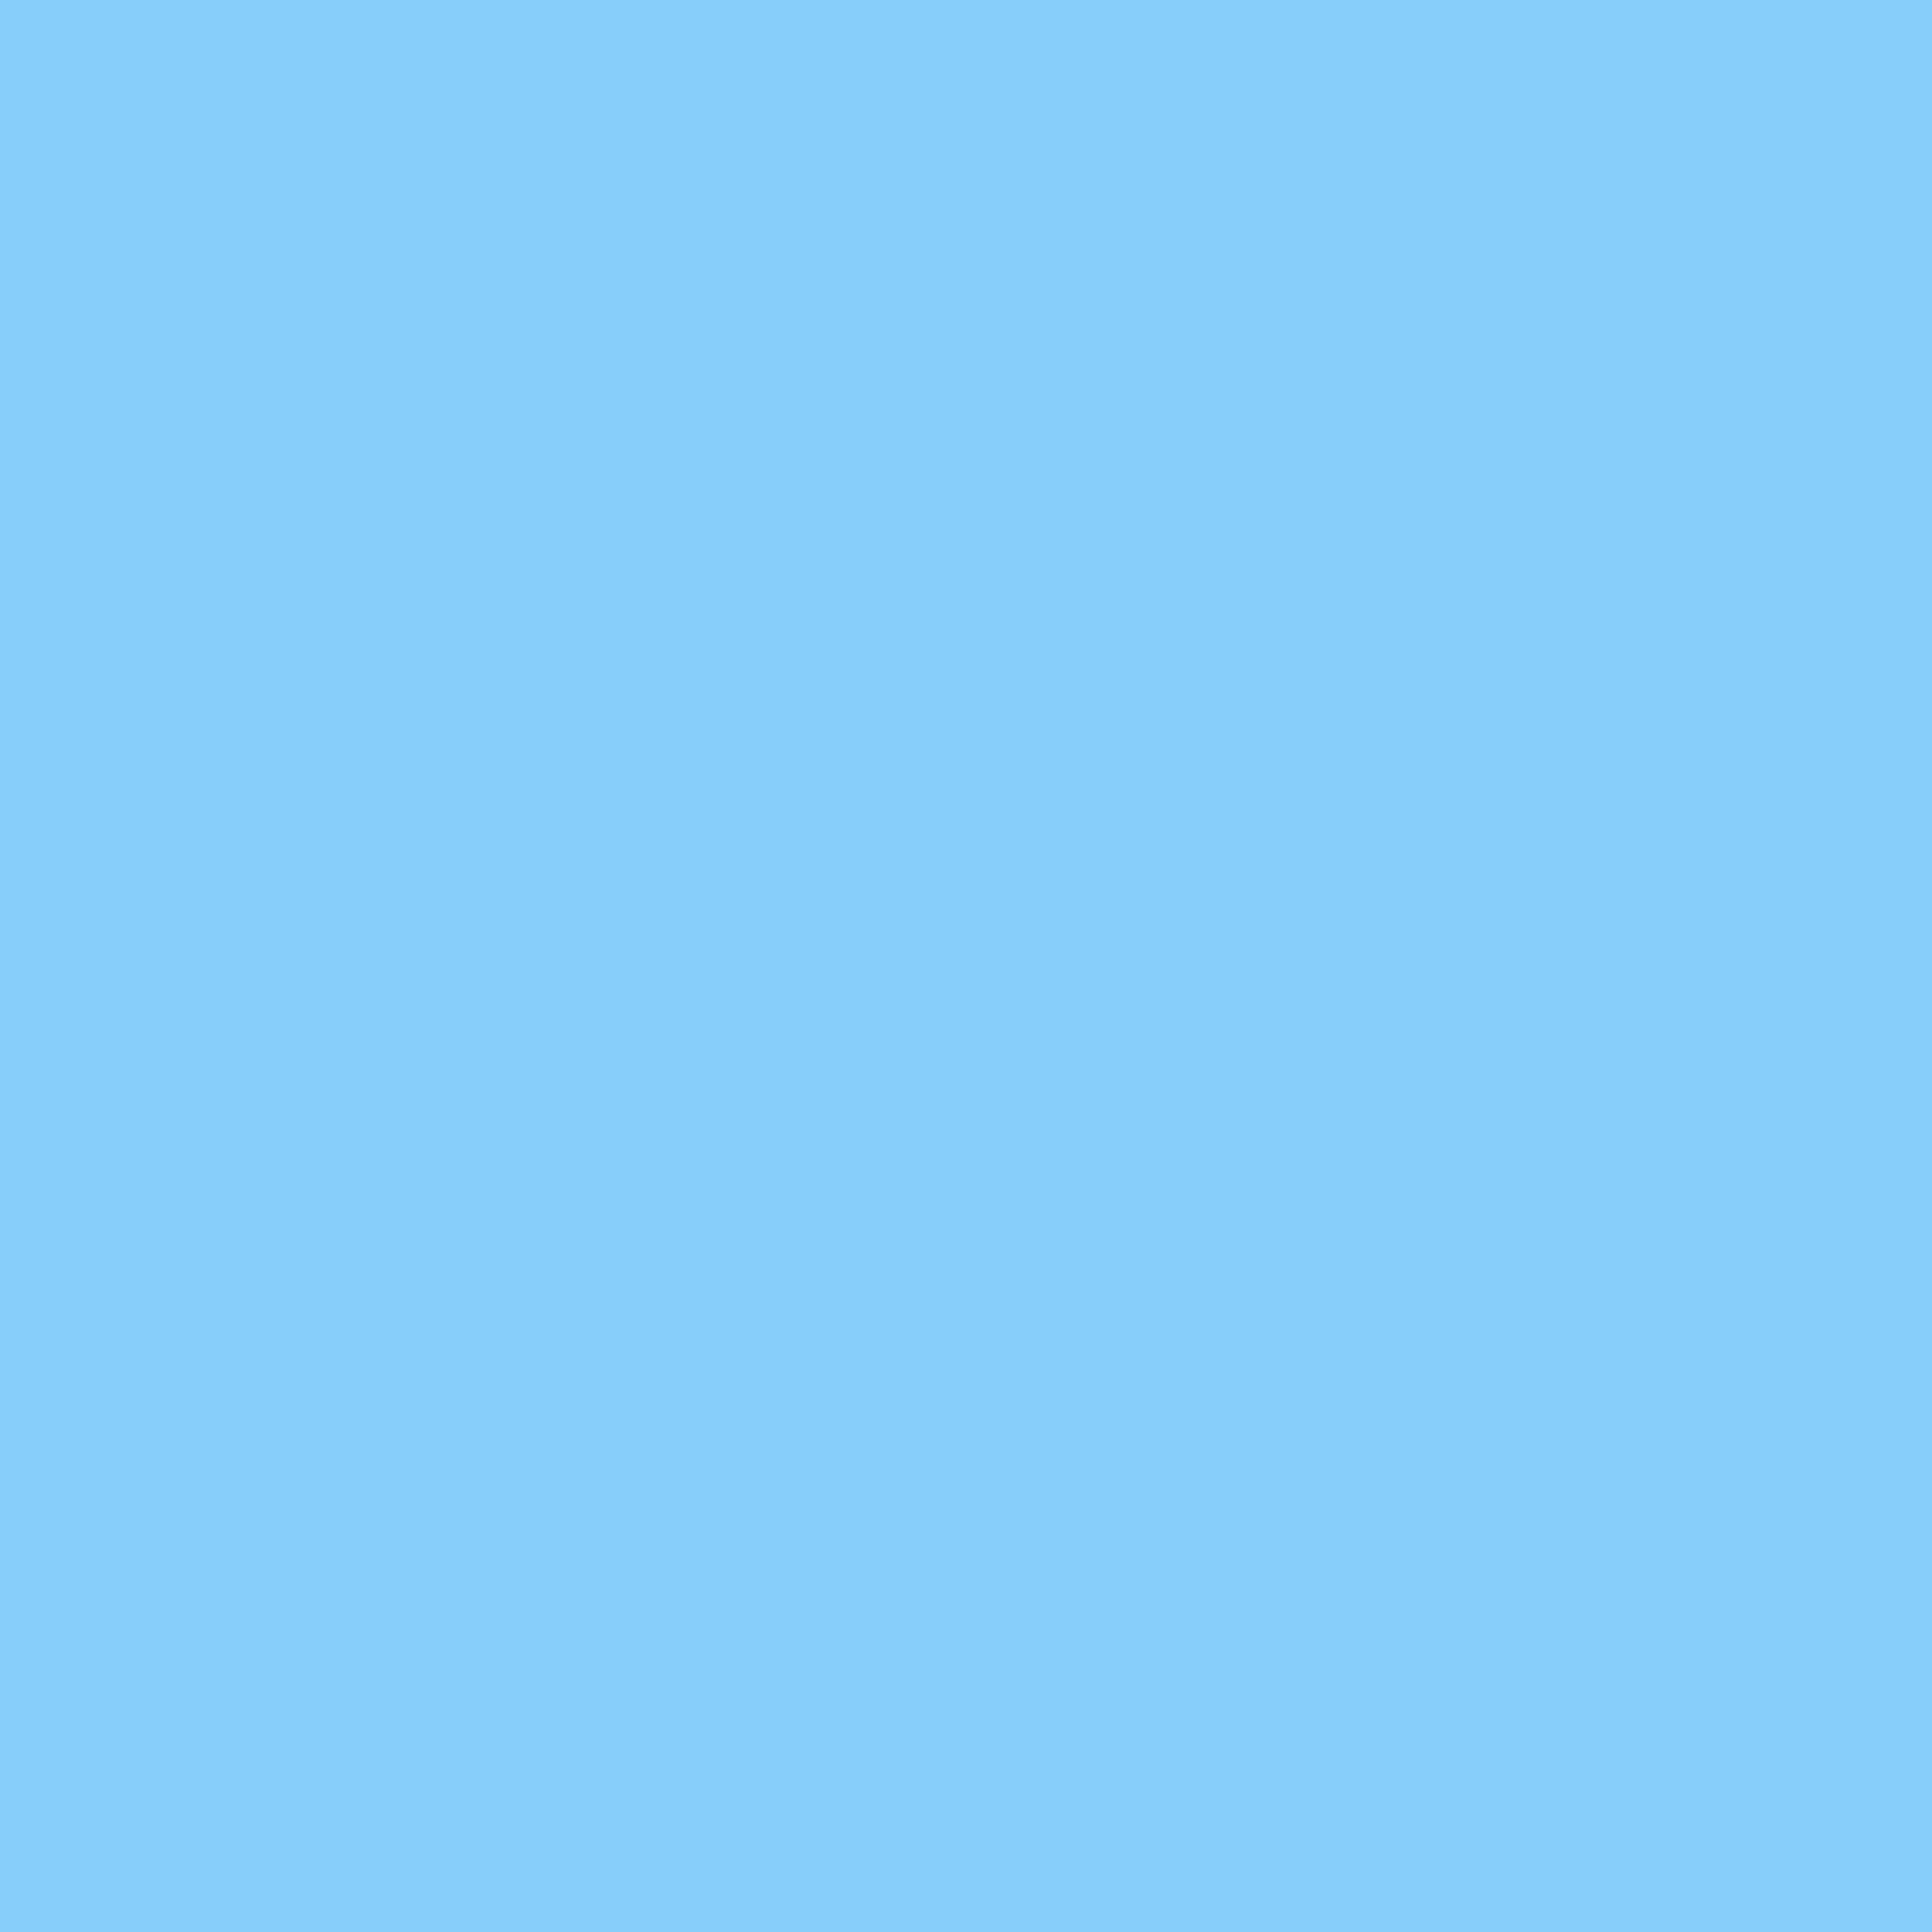 3600x3600 Light Sky Blue Solid Color Background